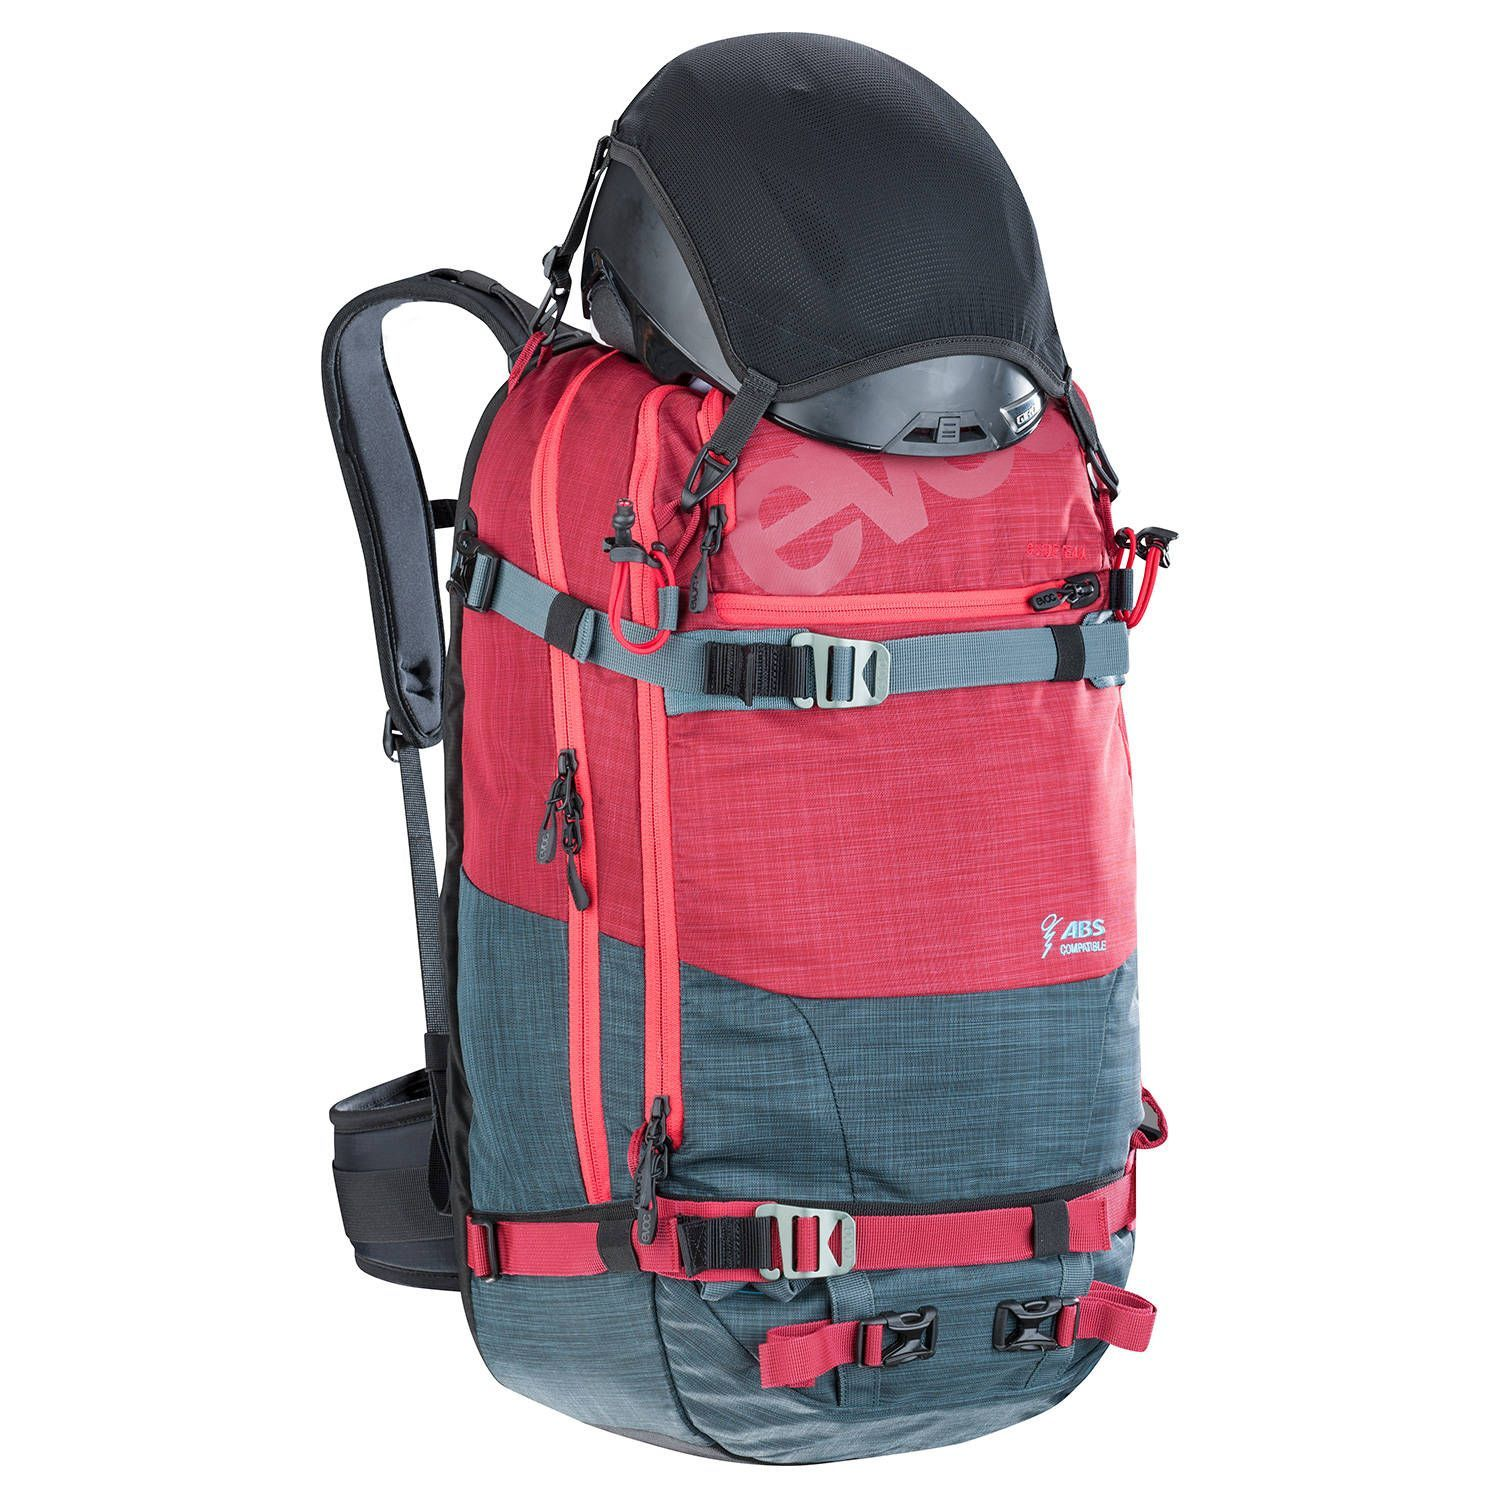 Backpack Evoc ABS Guide Zip-On 30L TEAM 2018